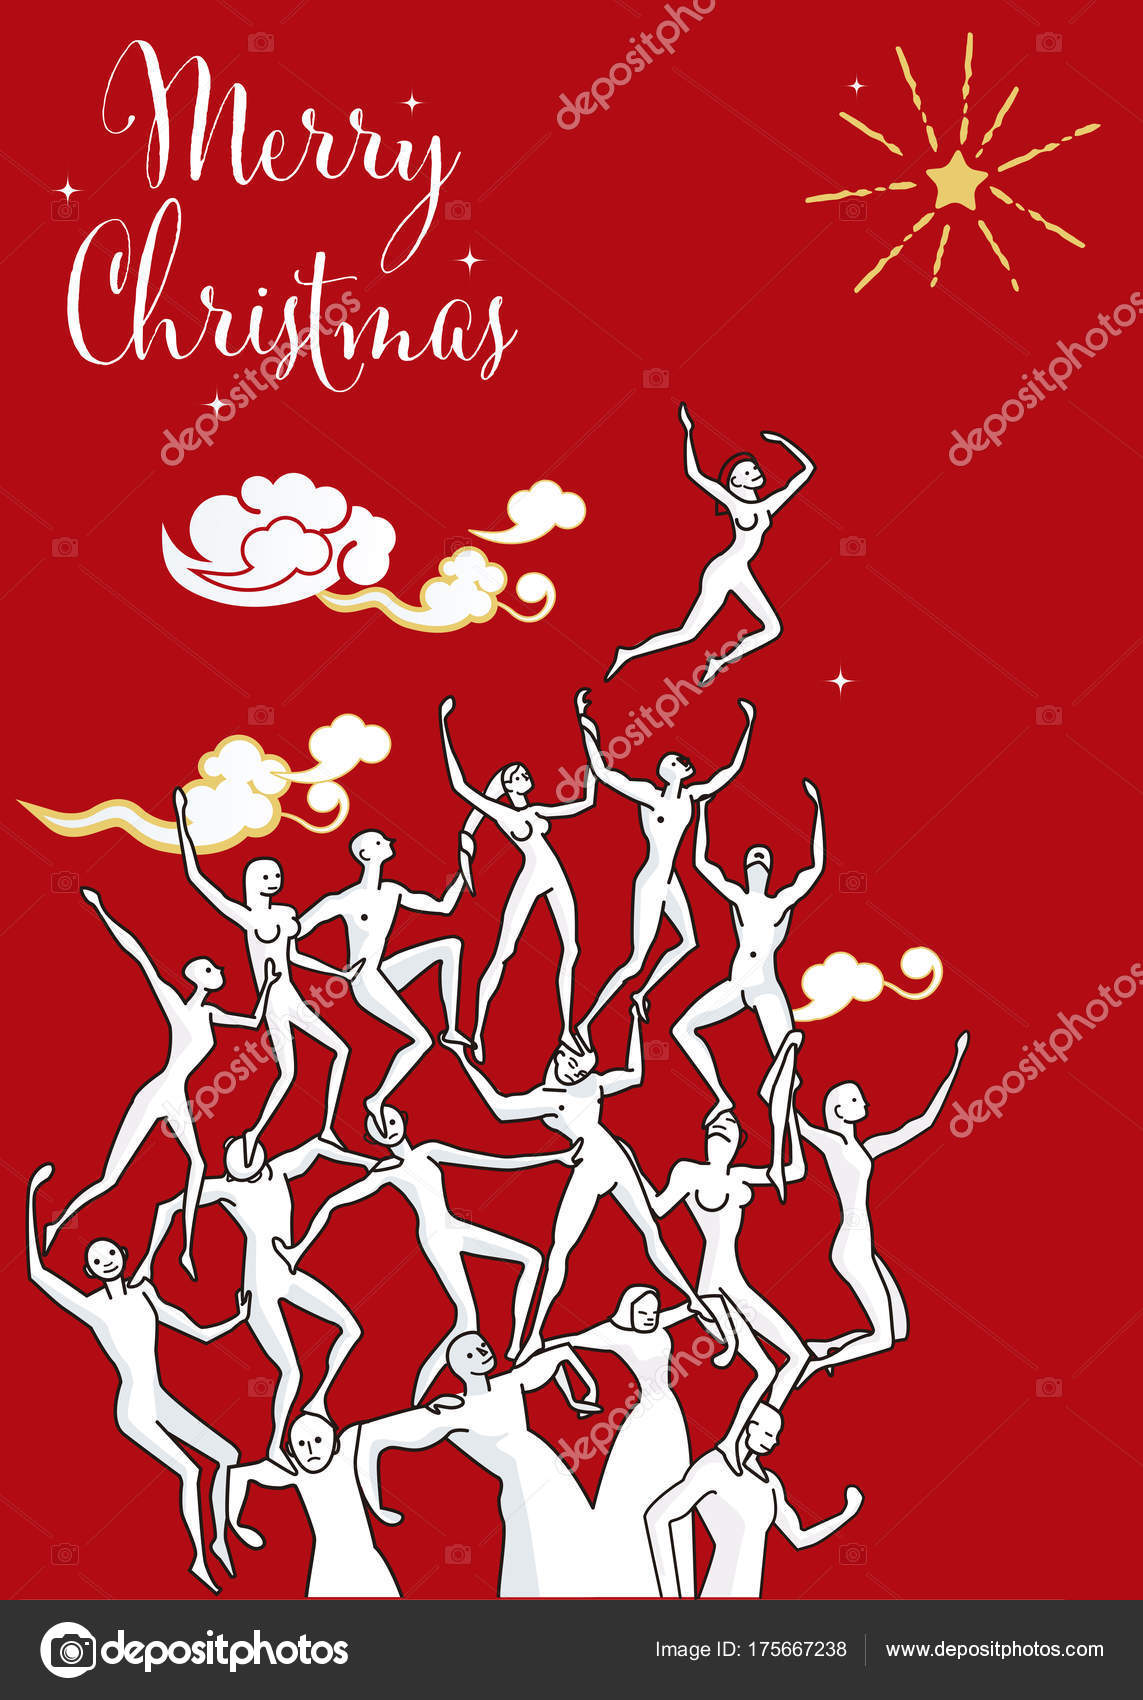 Human Tower Wishes Christmas Card — Stock Vector © Jesussanz